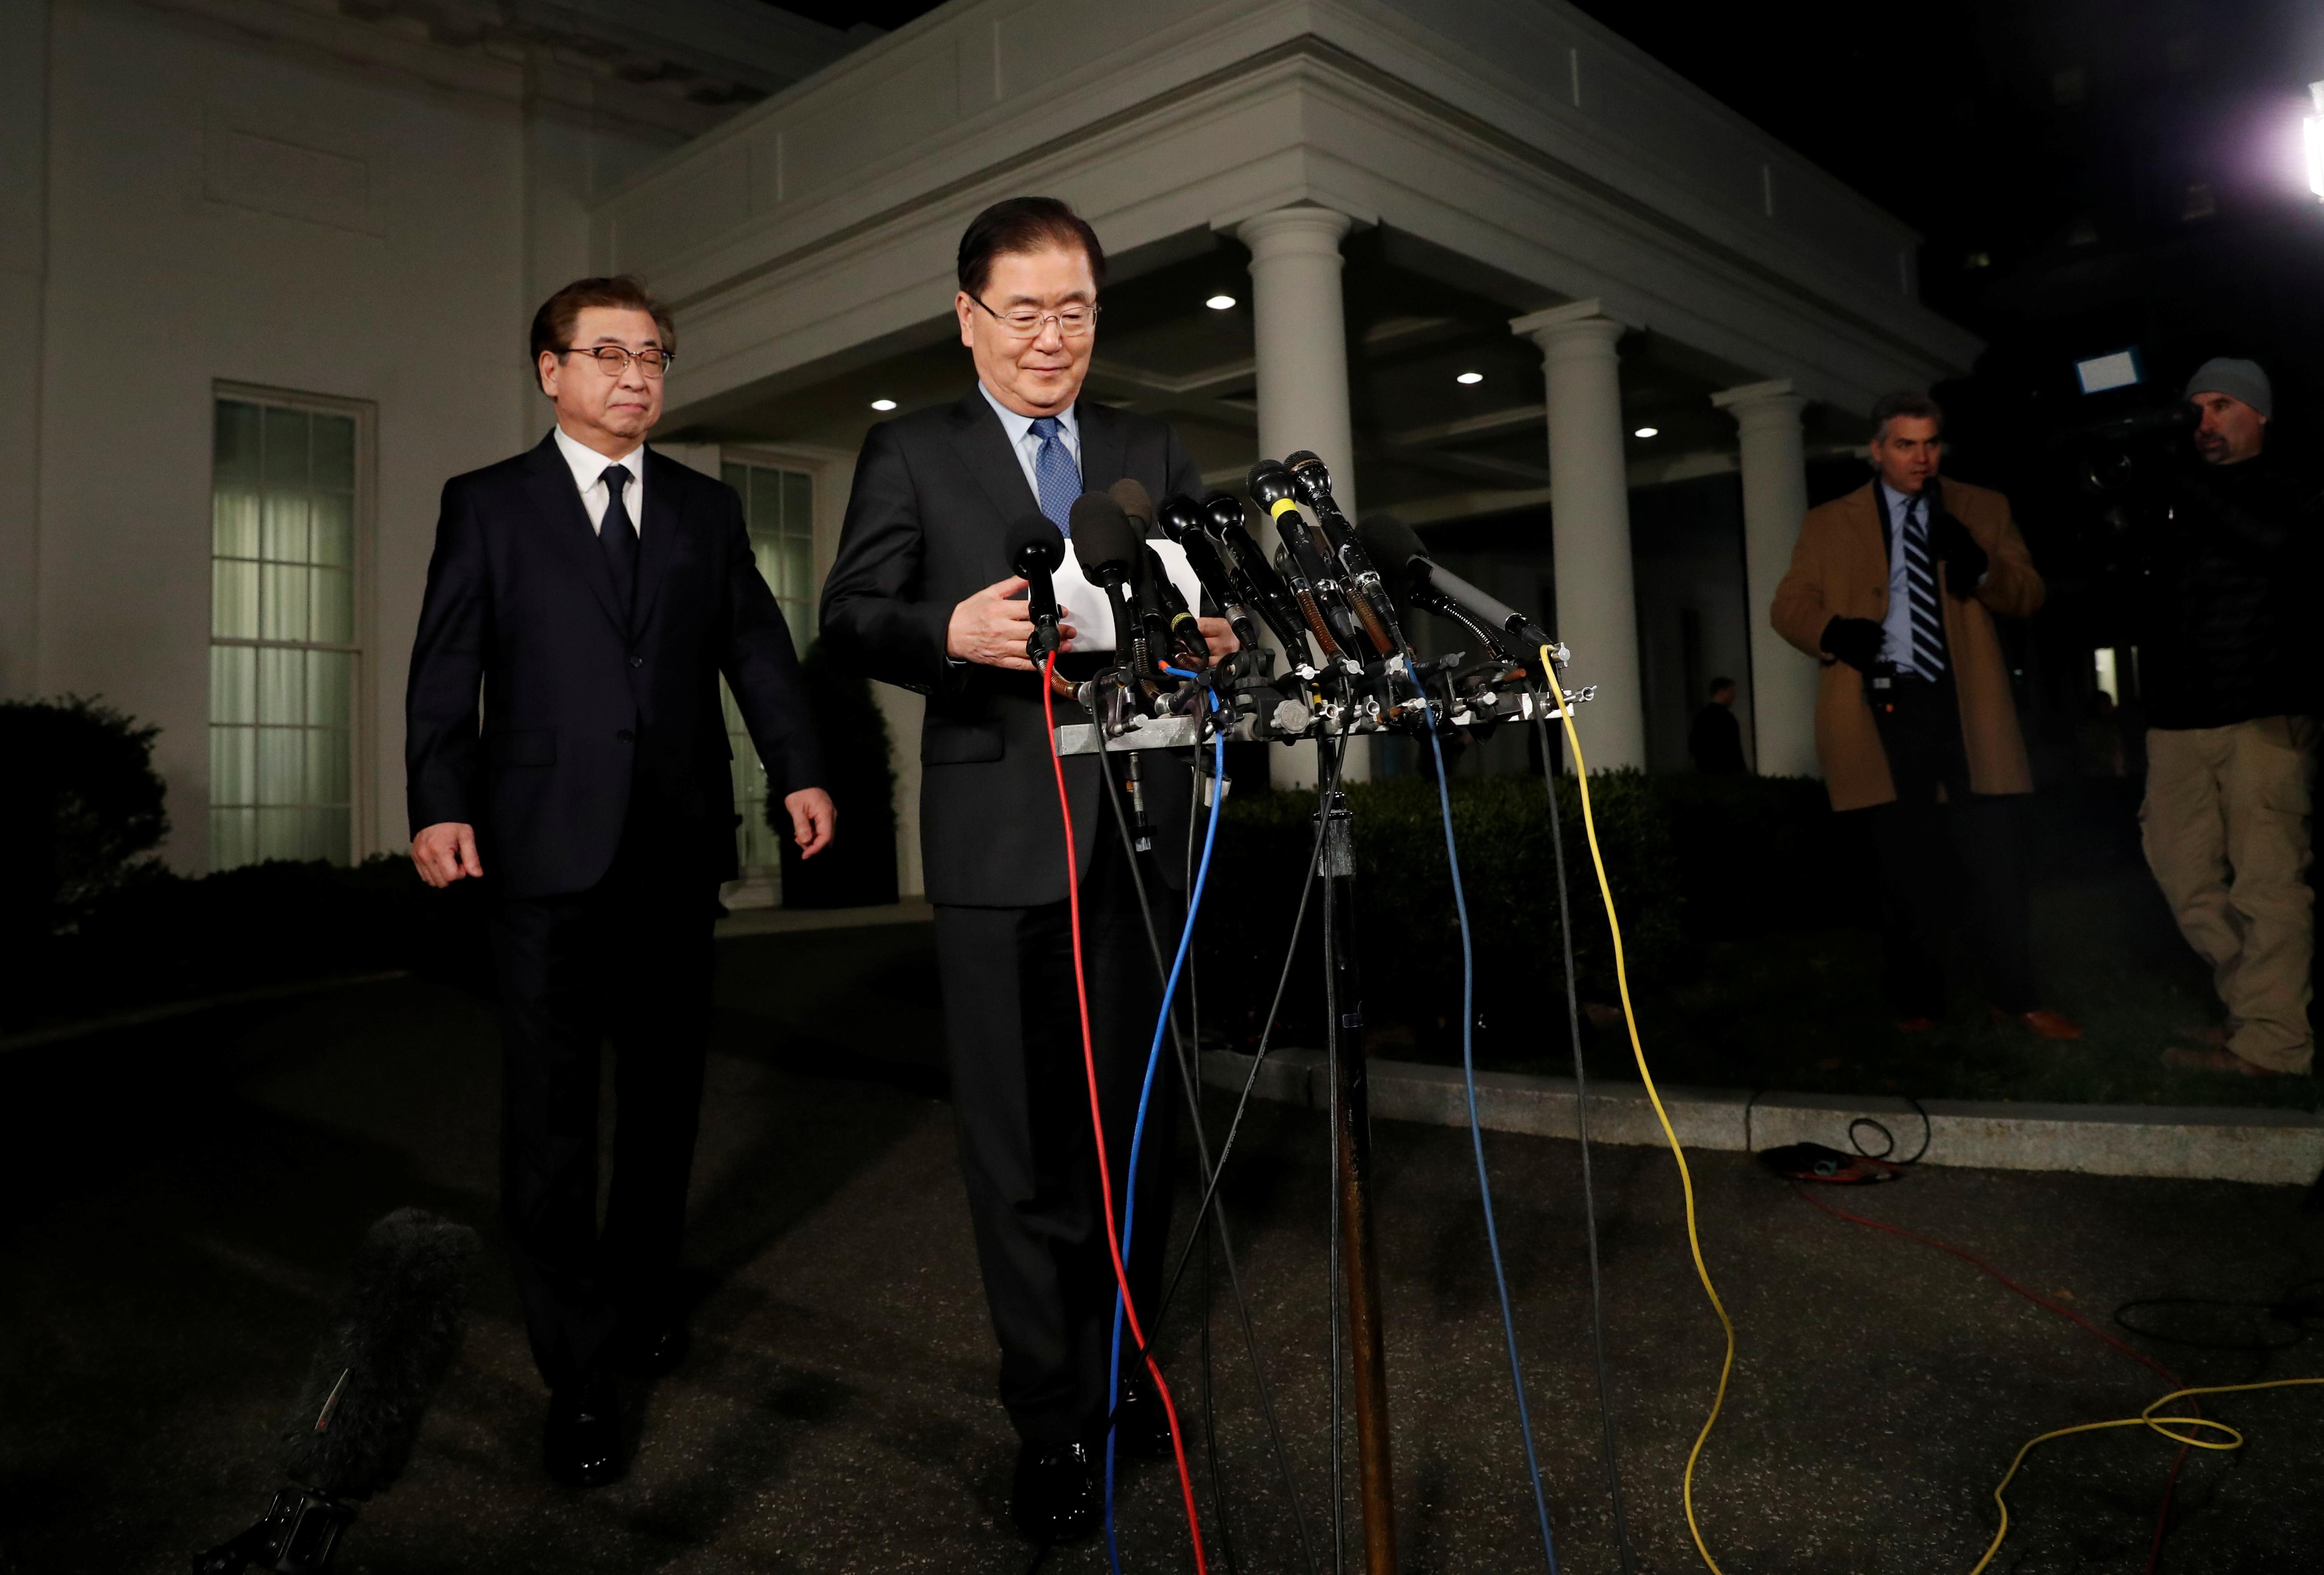 South Korea official's speech on Trump-North Korea leader meeting by May